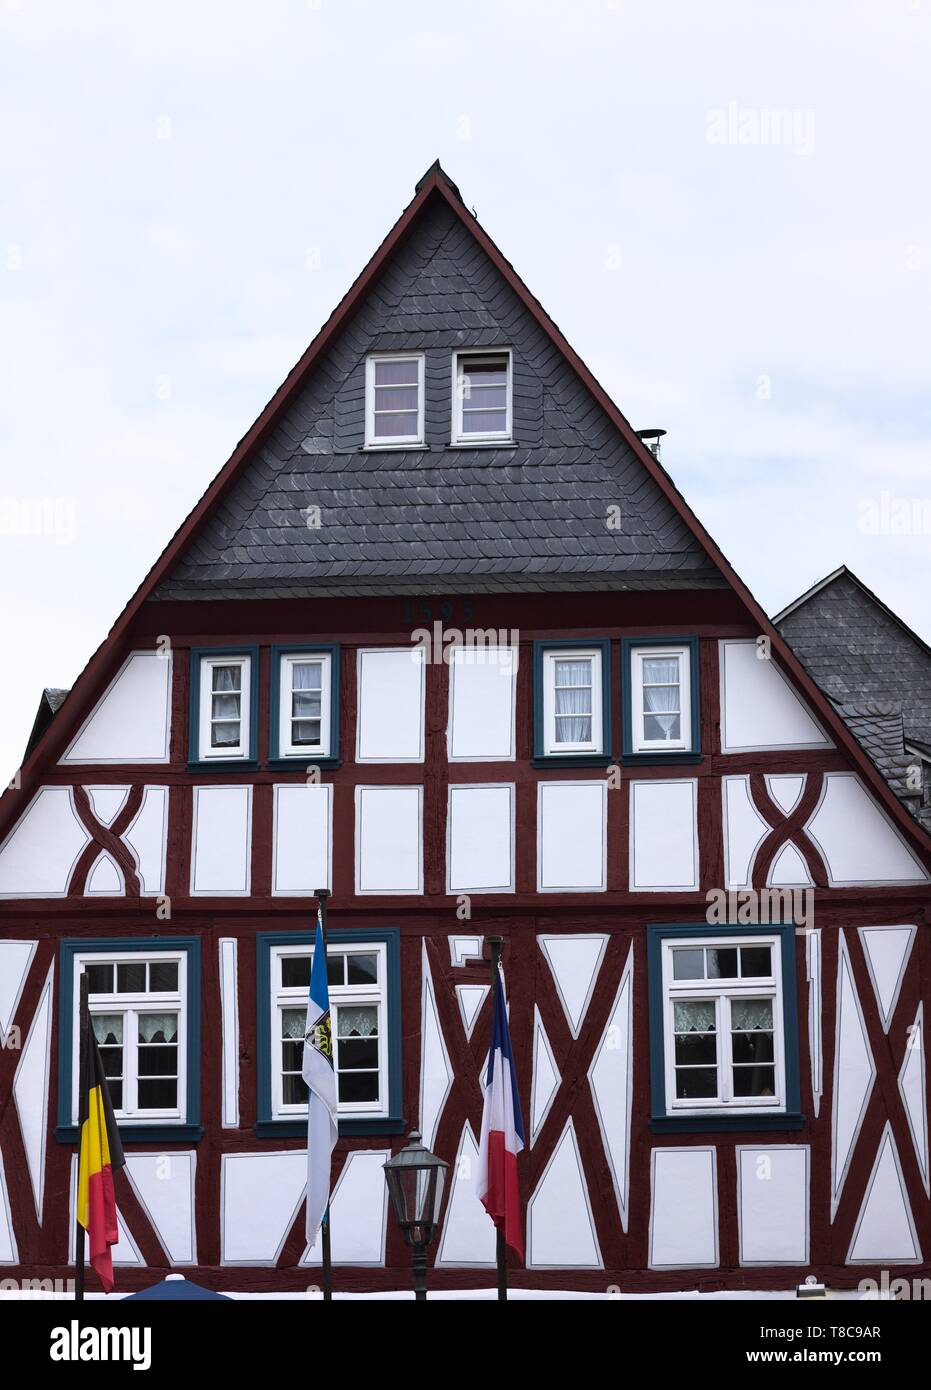 Half timbered house with flags (Bacharach, Germany, Europe) - Stock Image